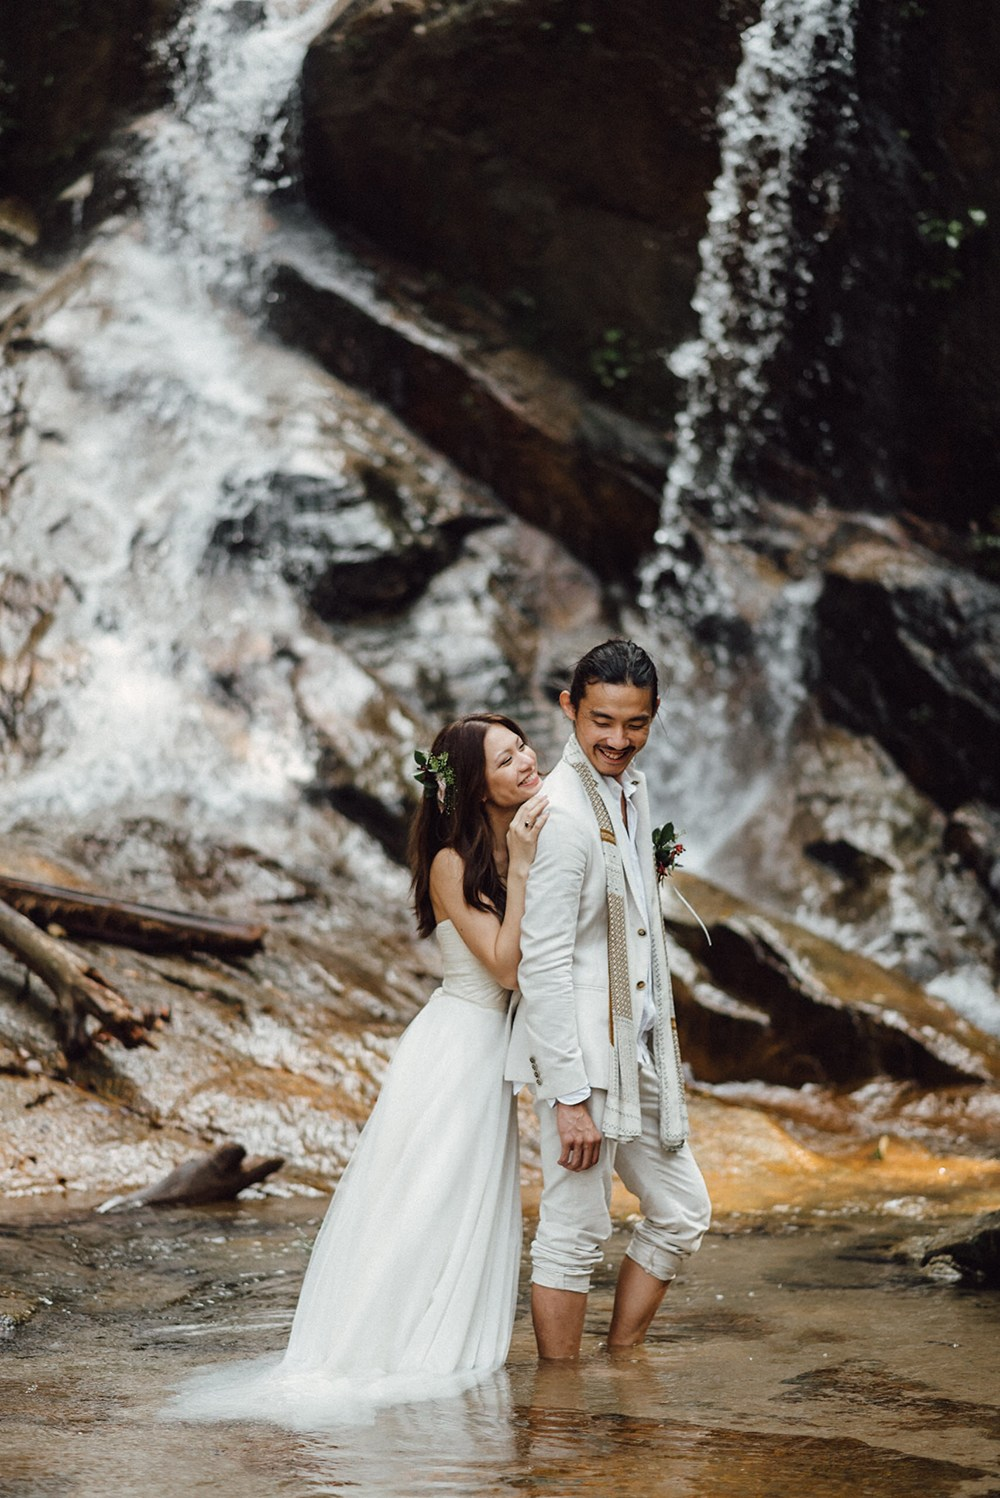 That waterfall backdrop is definitely to die for! #WeddingGoals